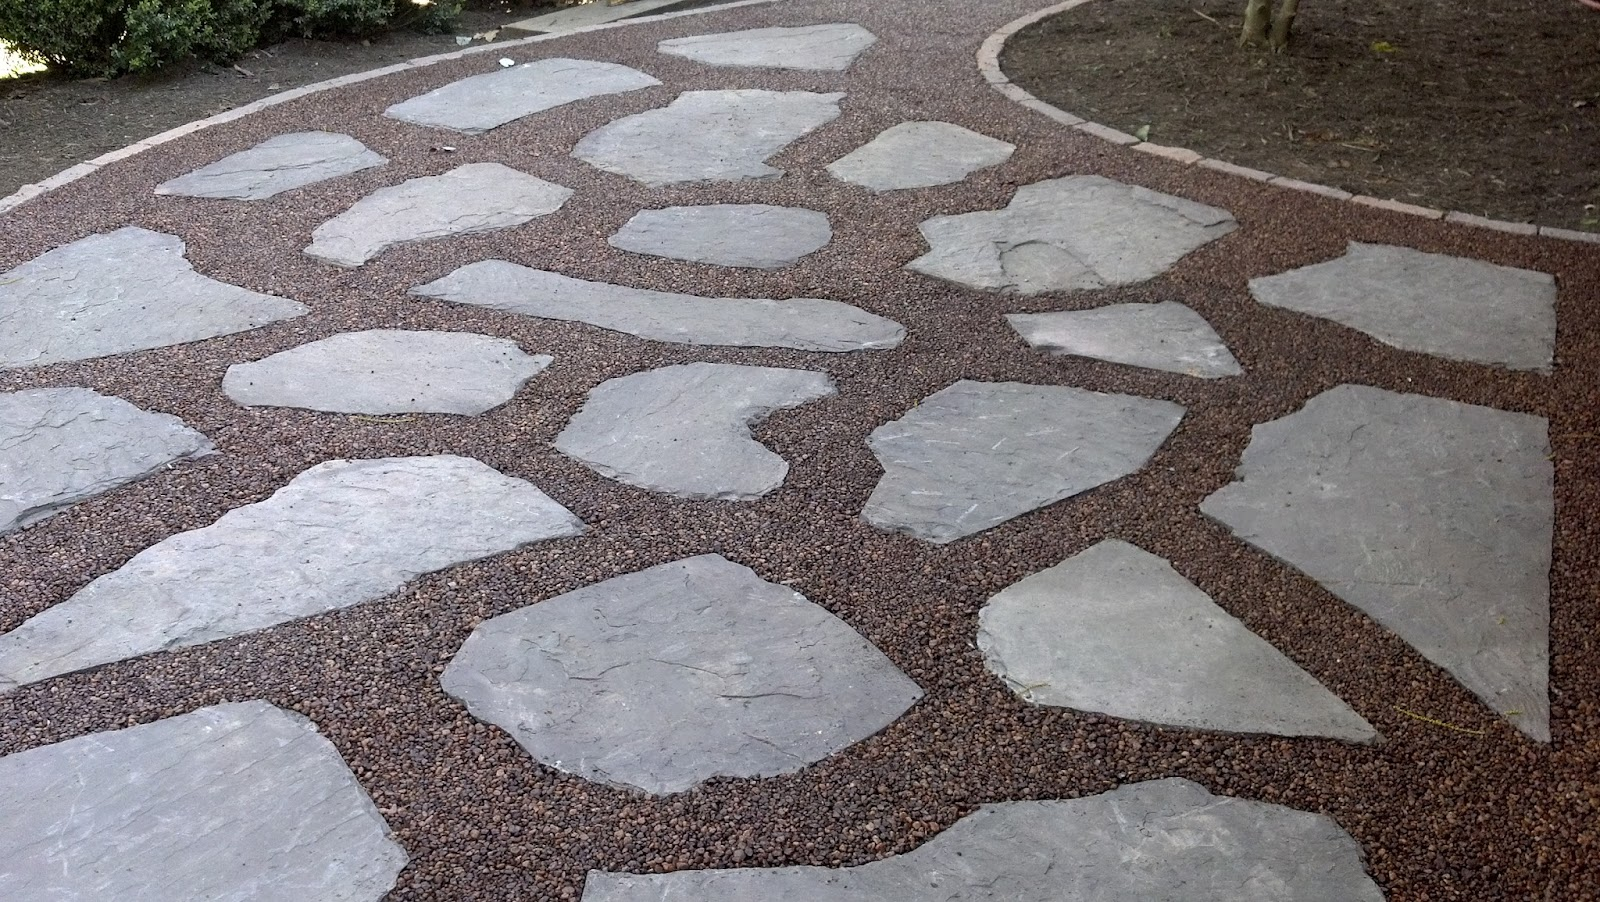 ... Caramel And Coffee Pebbles Mixed To Match The Color Of The Existing  Brick On The House. The Split Face Edger Was Set In Concrete Producing A  Durable ...